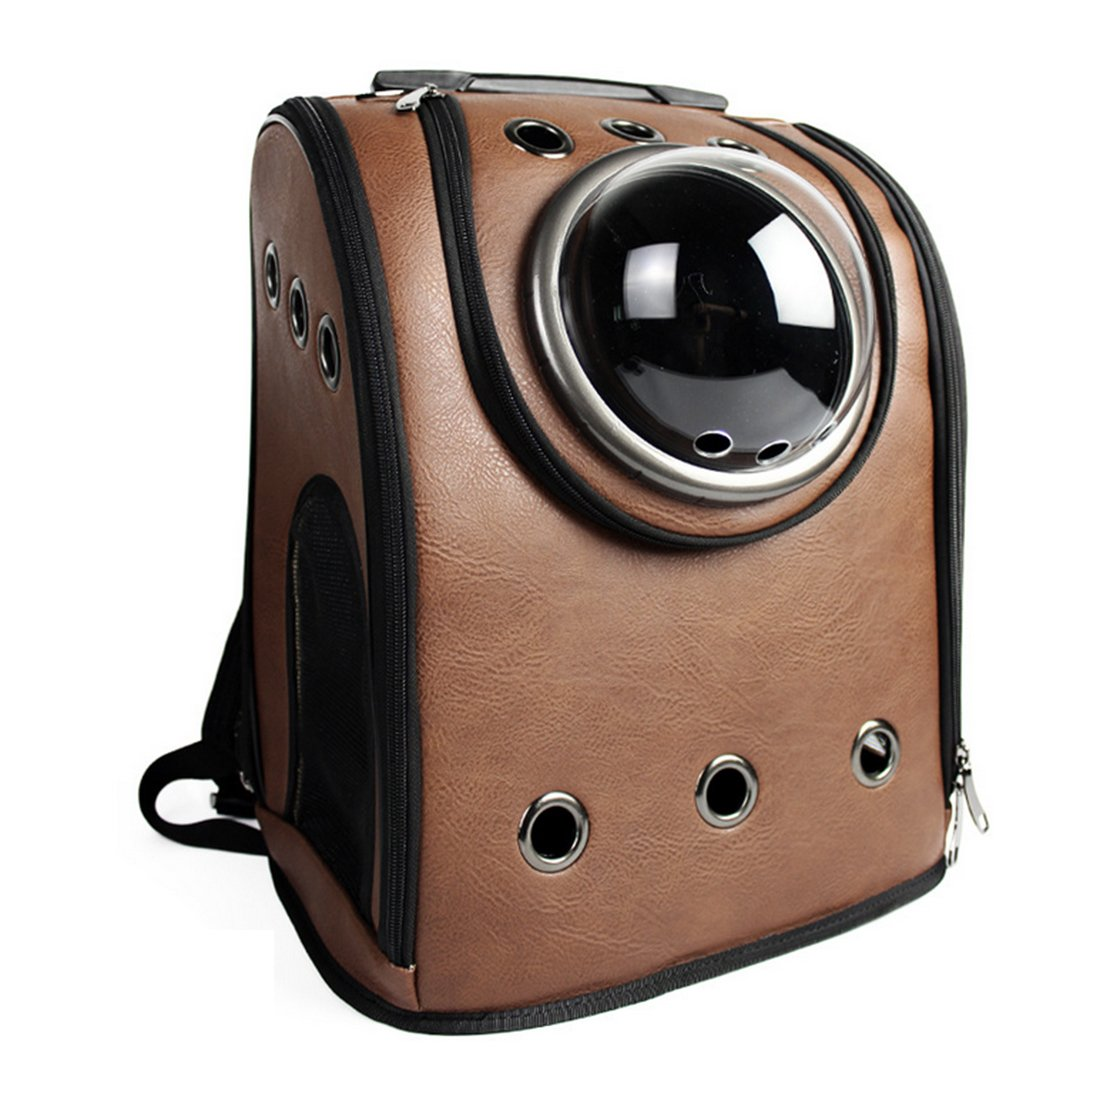 Pet Carrier Backpack, Petforu Space Capsule Dog Cat Small Animals Travel Bag - Coffee